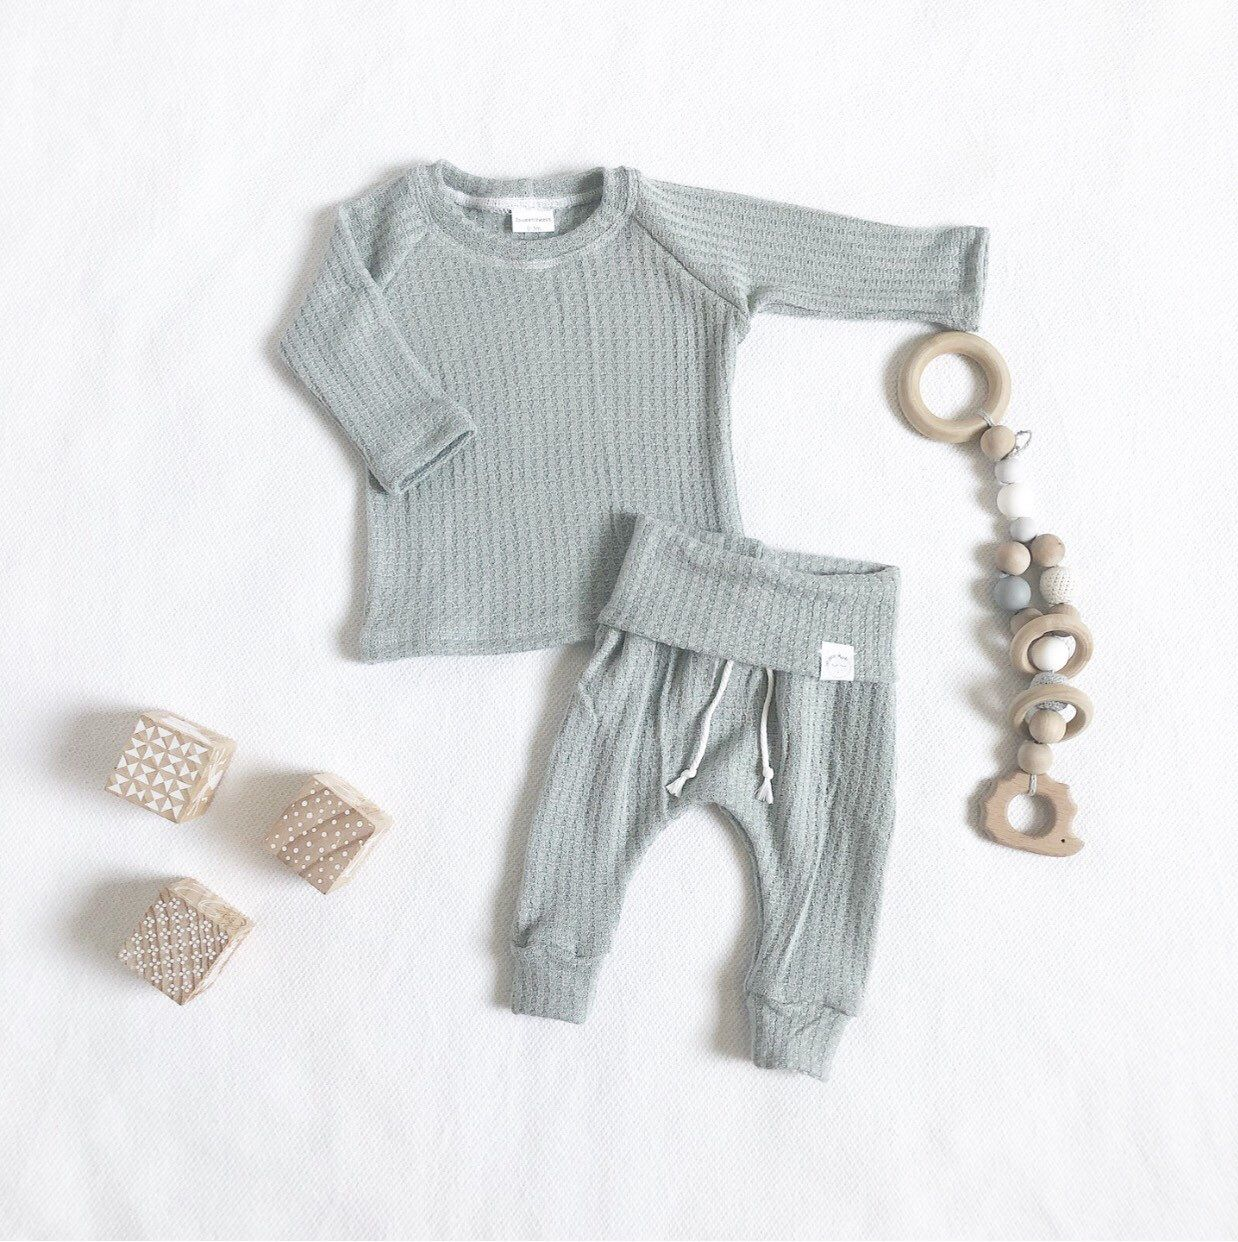 Photo of Baby blue outfit, baby boy clothes, coming home outfit, hospital baby clothes.